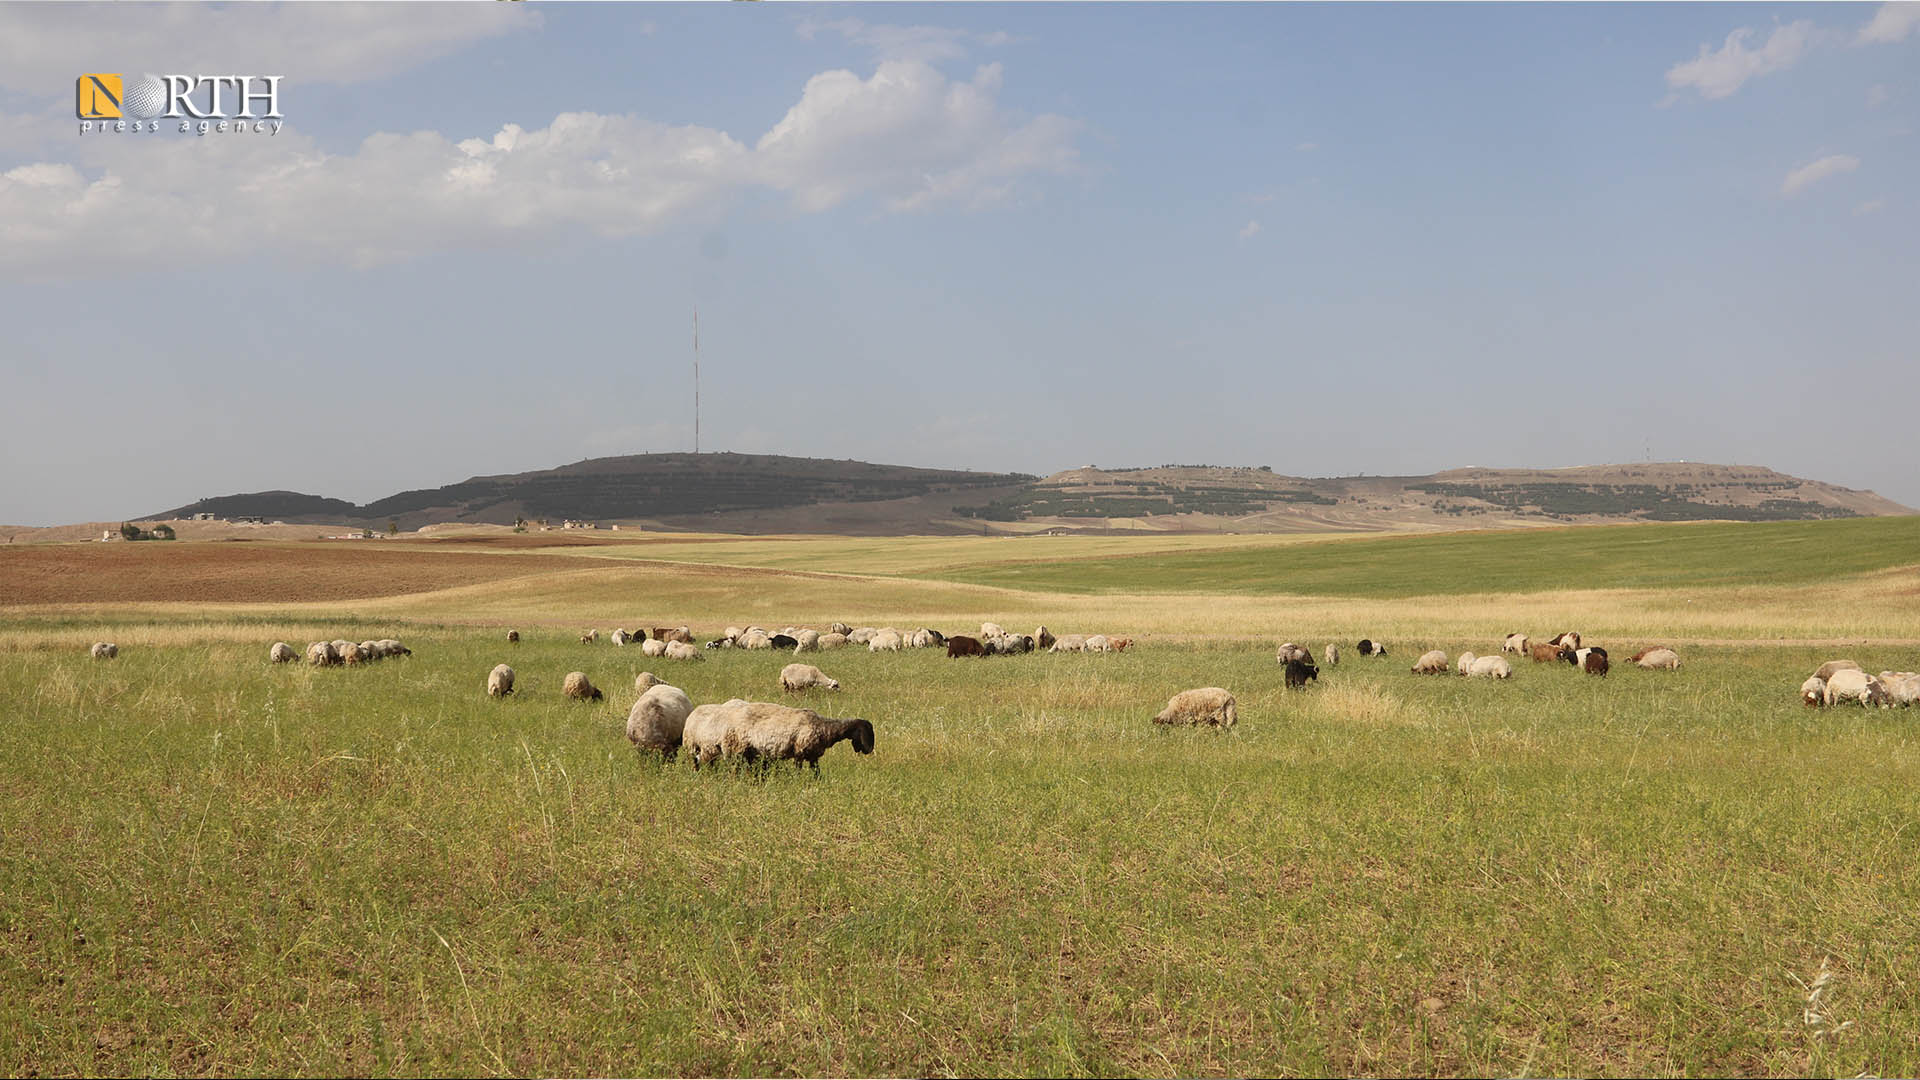 Damaged crops in Derik countryside due to lack of rain - North Press